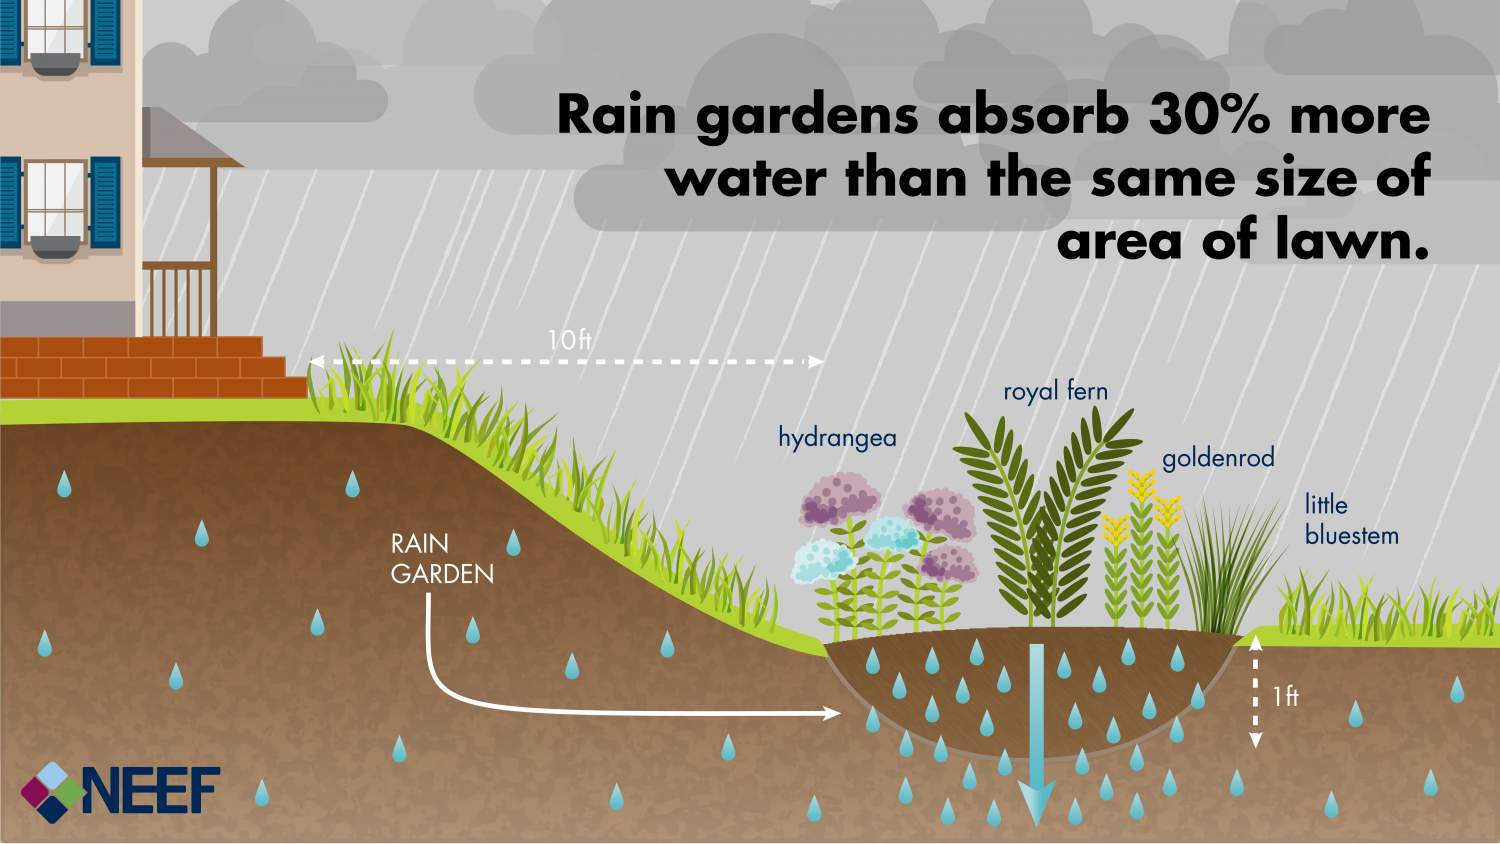 Rain gardens absorb 30% more water than the same size of area of lawn